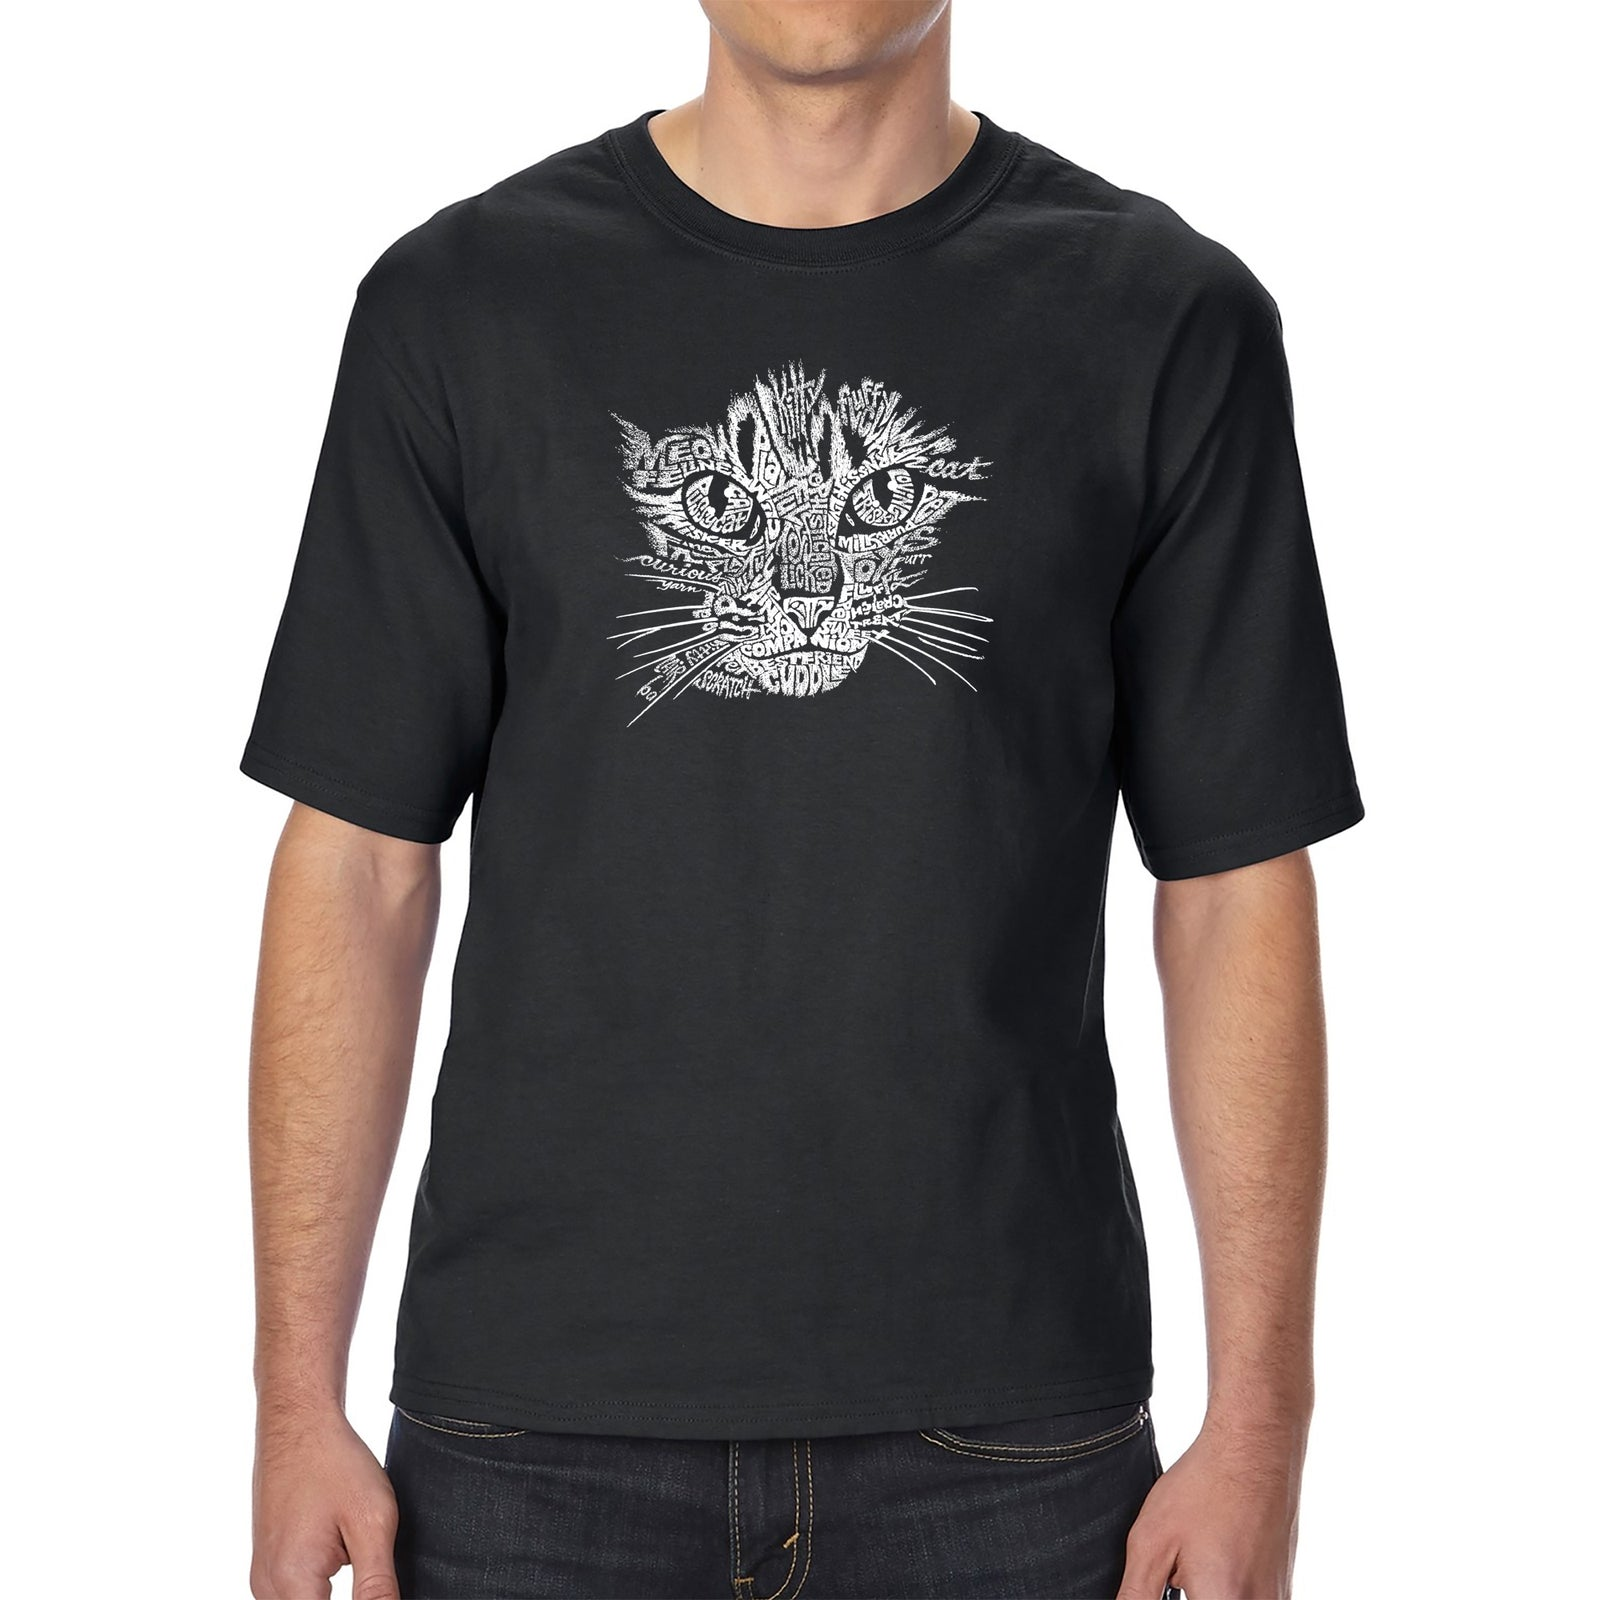 Men's Tall and Long Word Art T-shirt - Cat Face